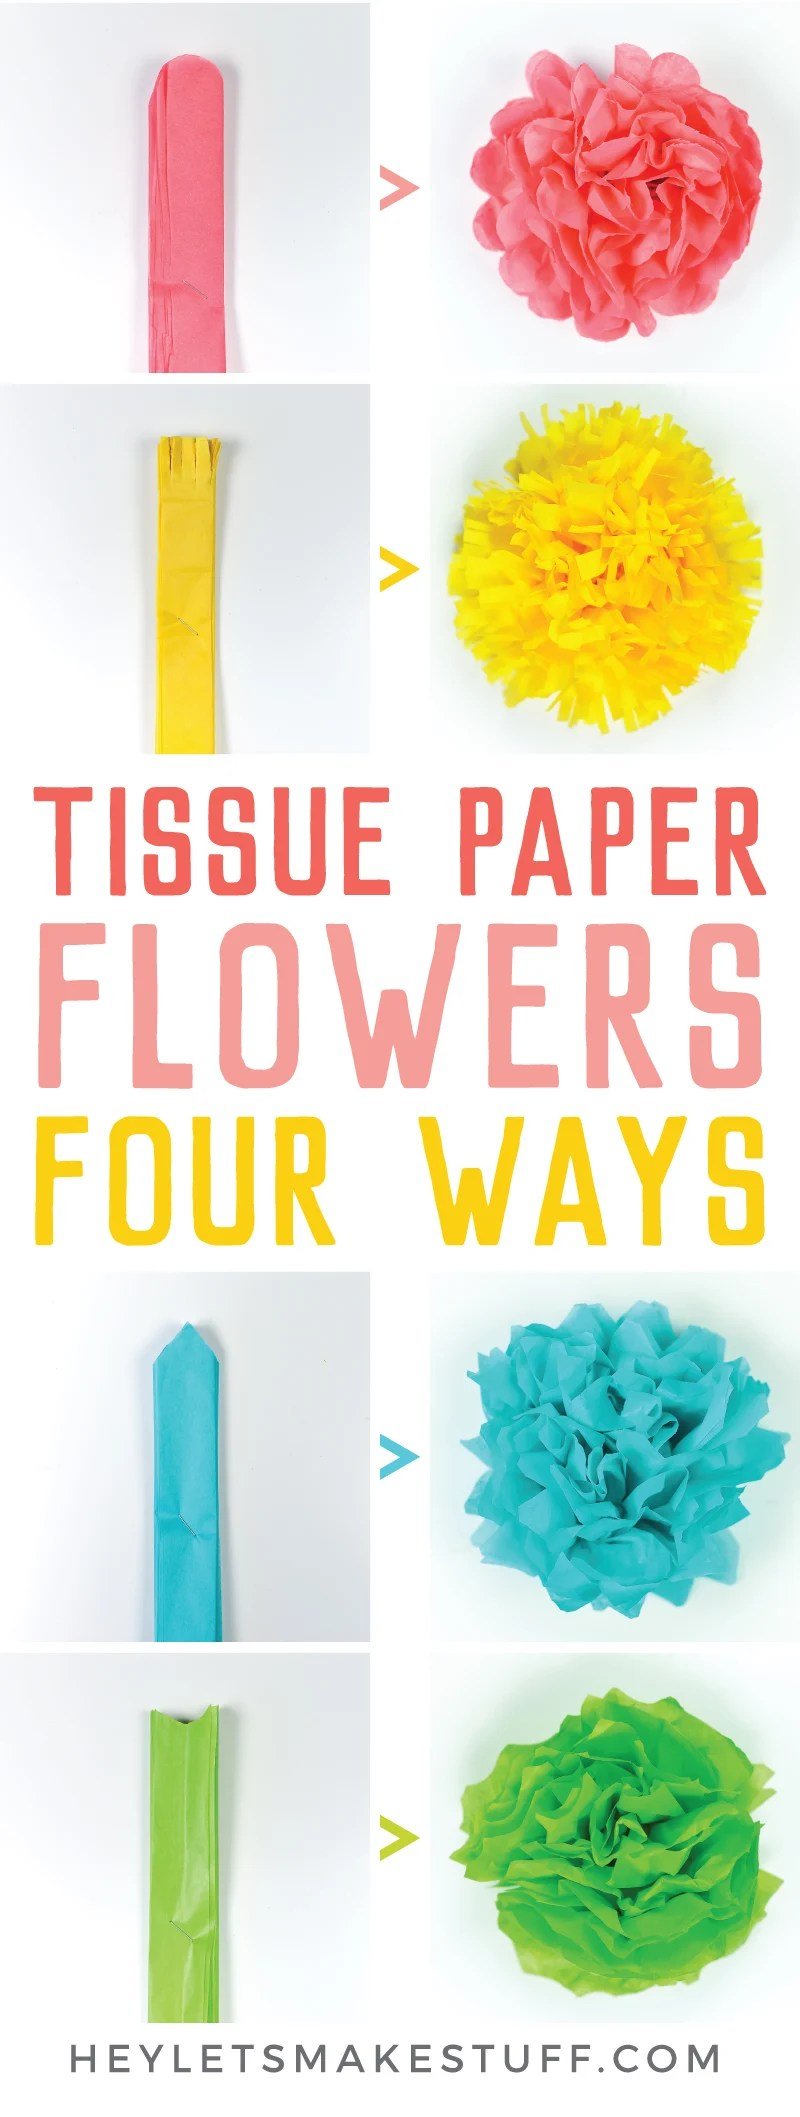 Tissue paper flowers make a gorgeous event decor with a big impact—think weddings, baby showers, bridal showers and more! Learn how to make easy tissue paper flowers, as well as different methods for cutting the petals to create four unique styles. via @heyletsmakestuf